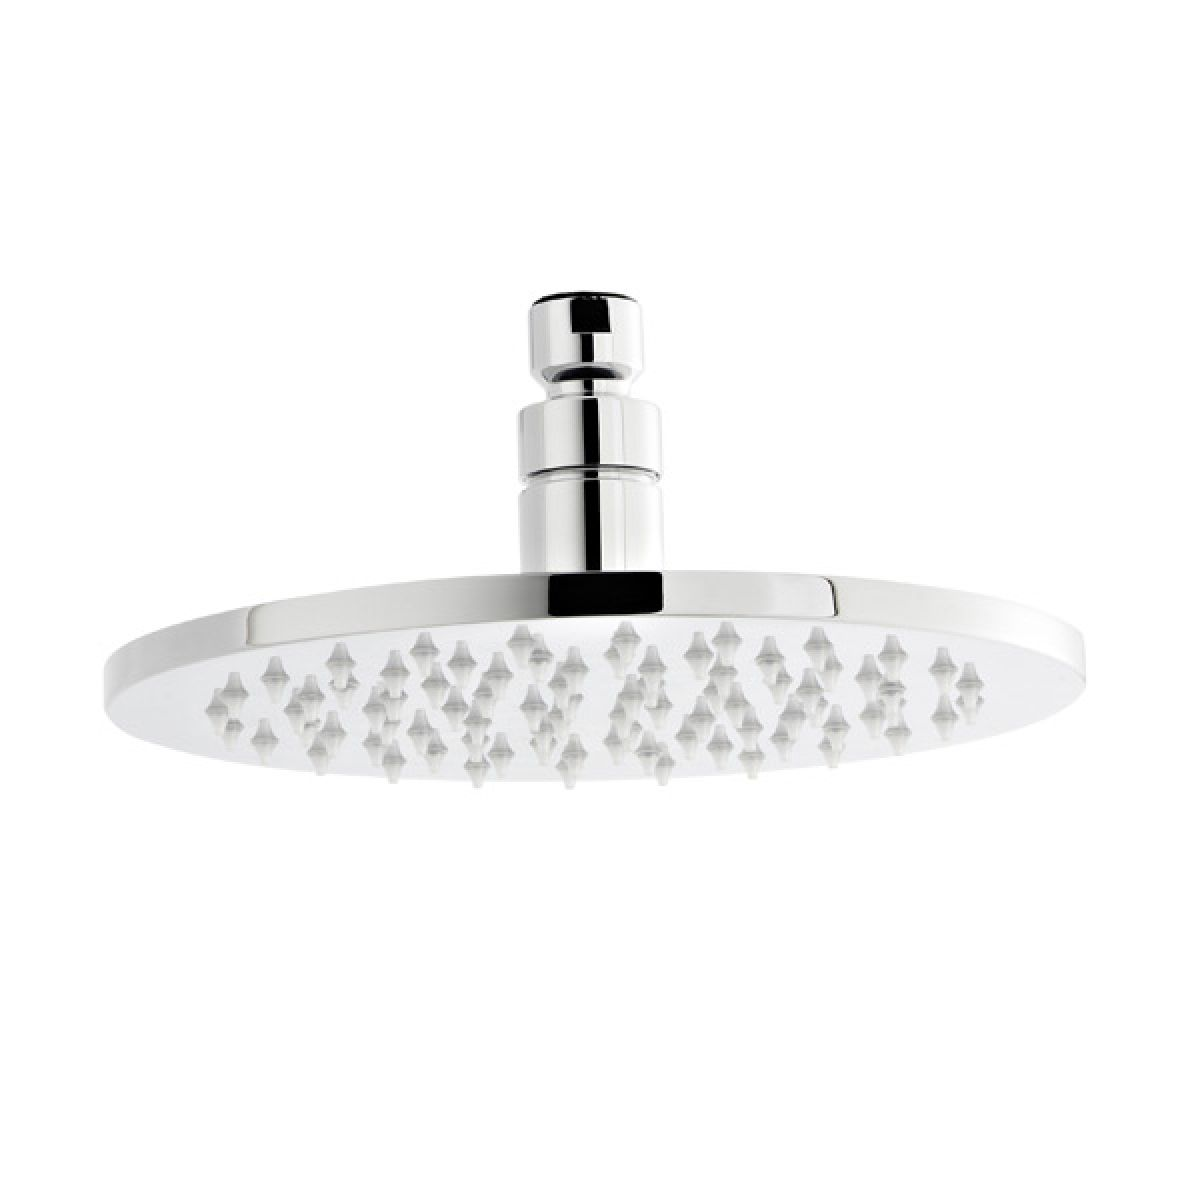 Ultra Small Round LED Fixed Shower Head